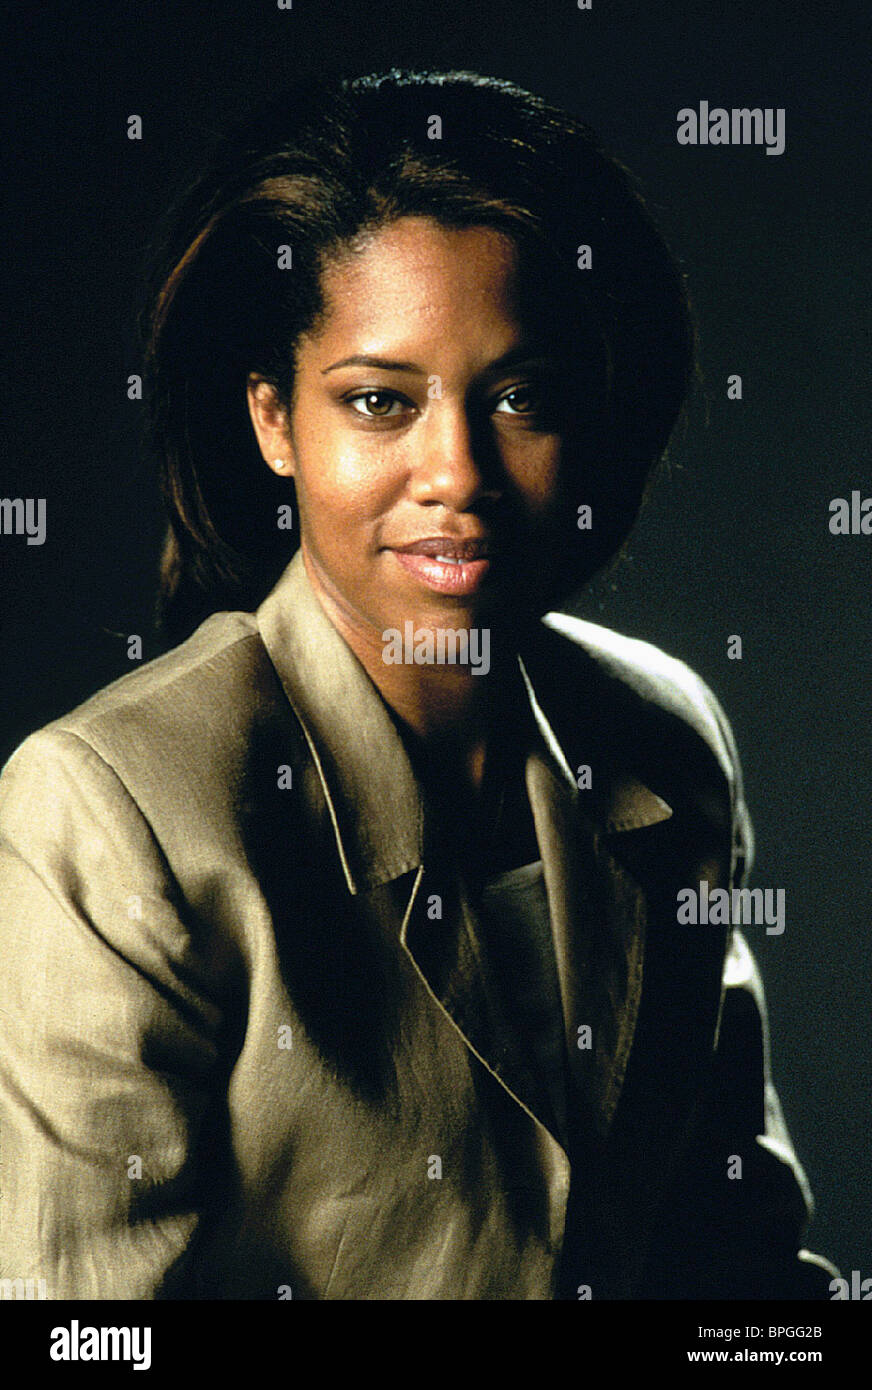 Regina King Enemy Of The State 1998 Stock Photo Alamy